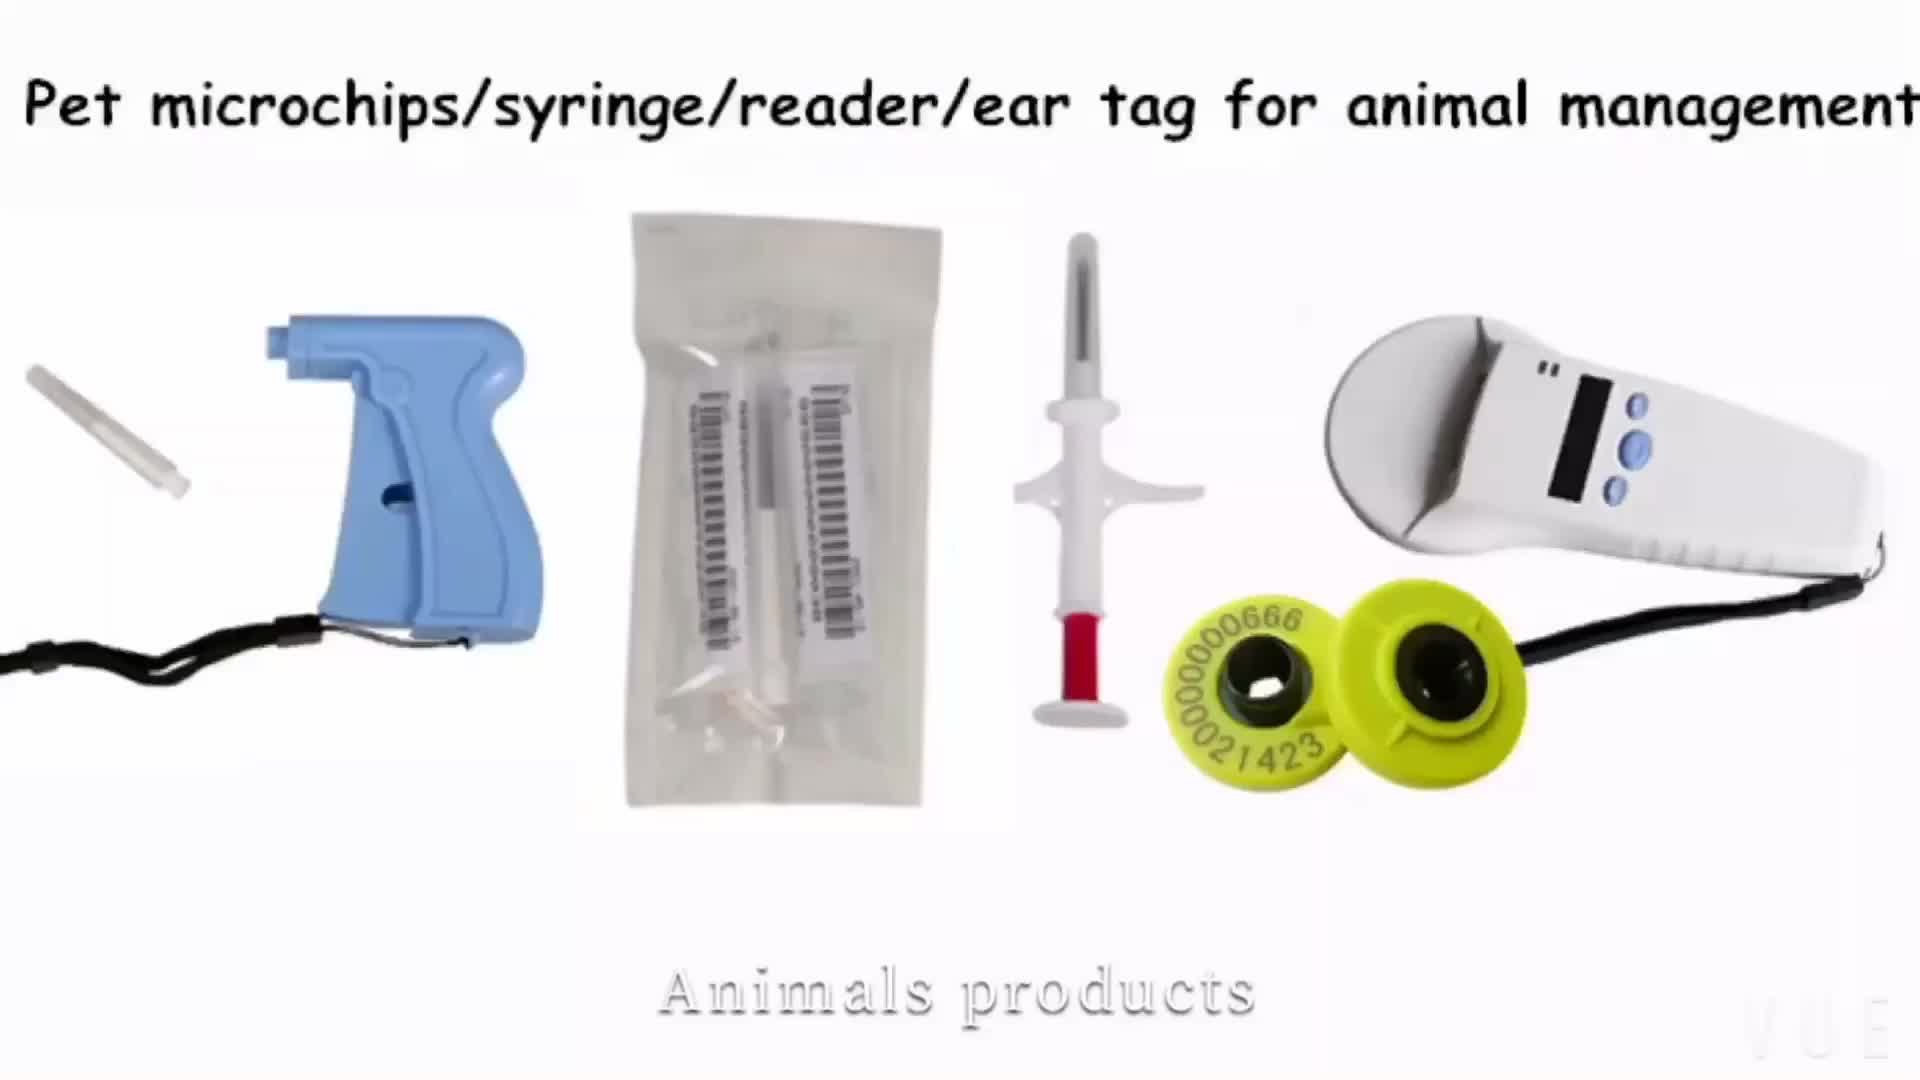 RFID Animal Ear Tag for Livestock ISO 11784/11785 Animal Tag for Sheep